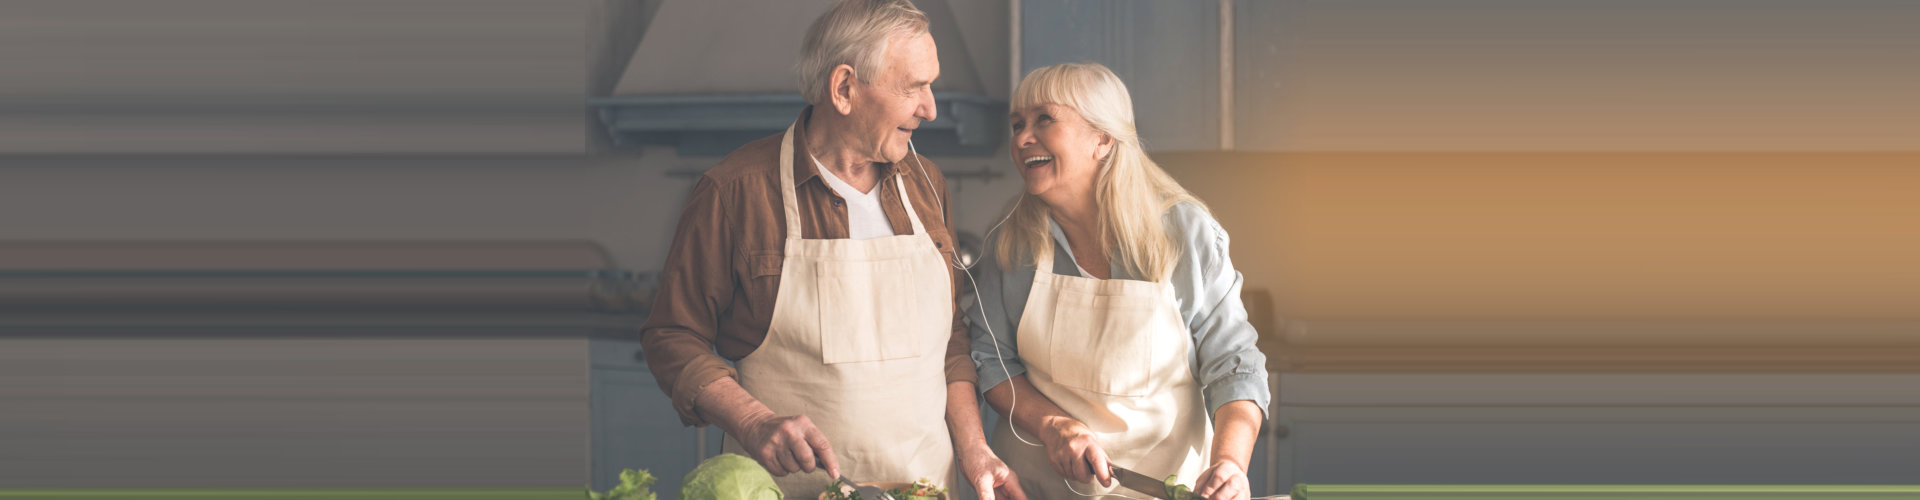 elderly couple preparing food concept